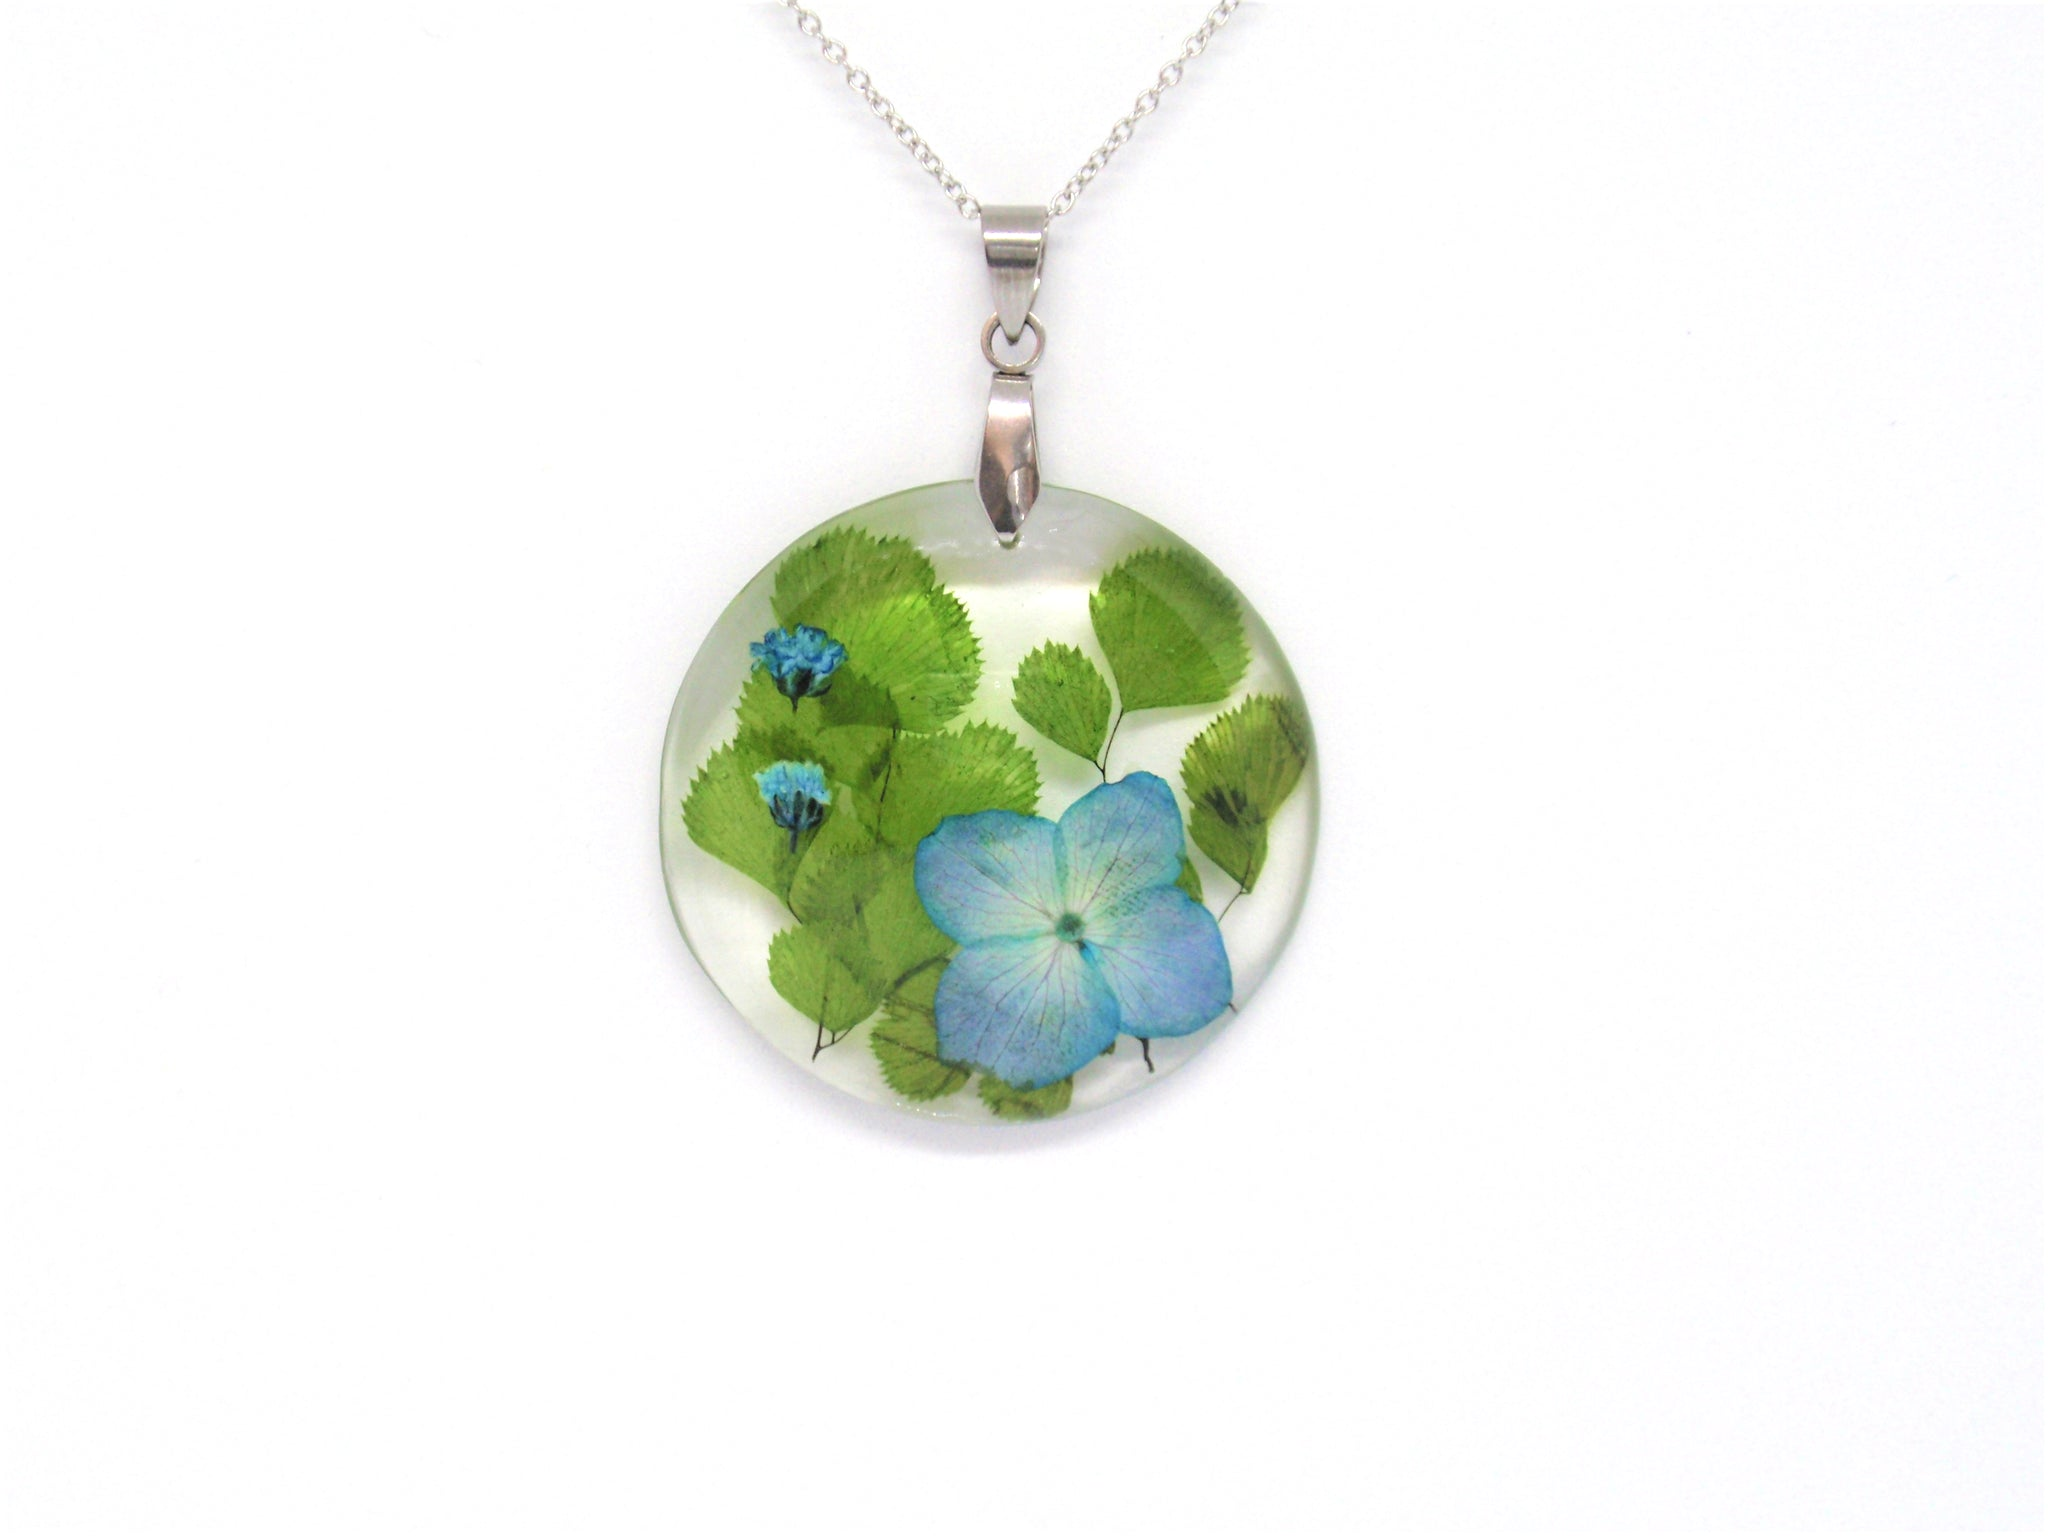 Hydrangea flower necklace